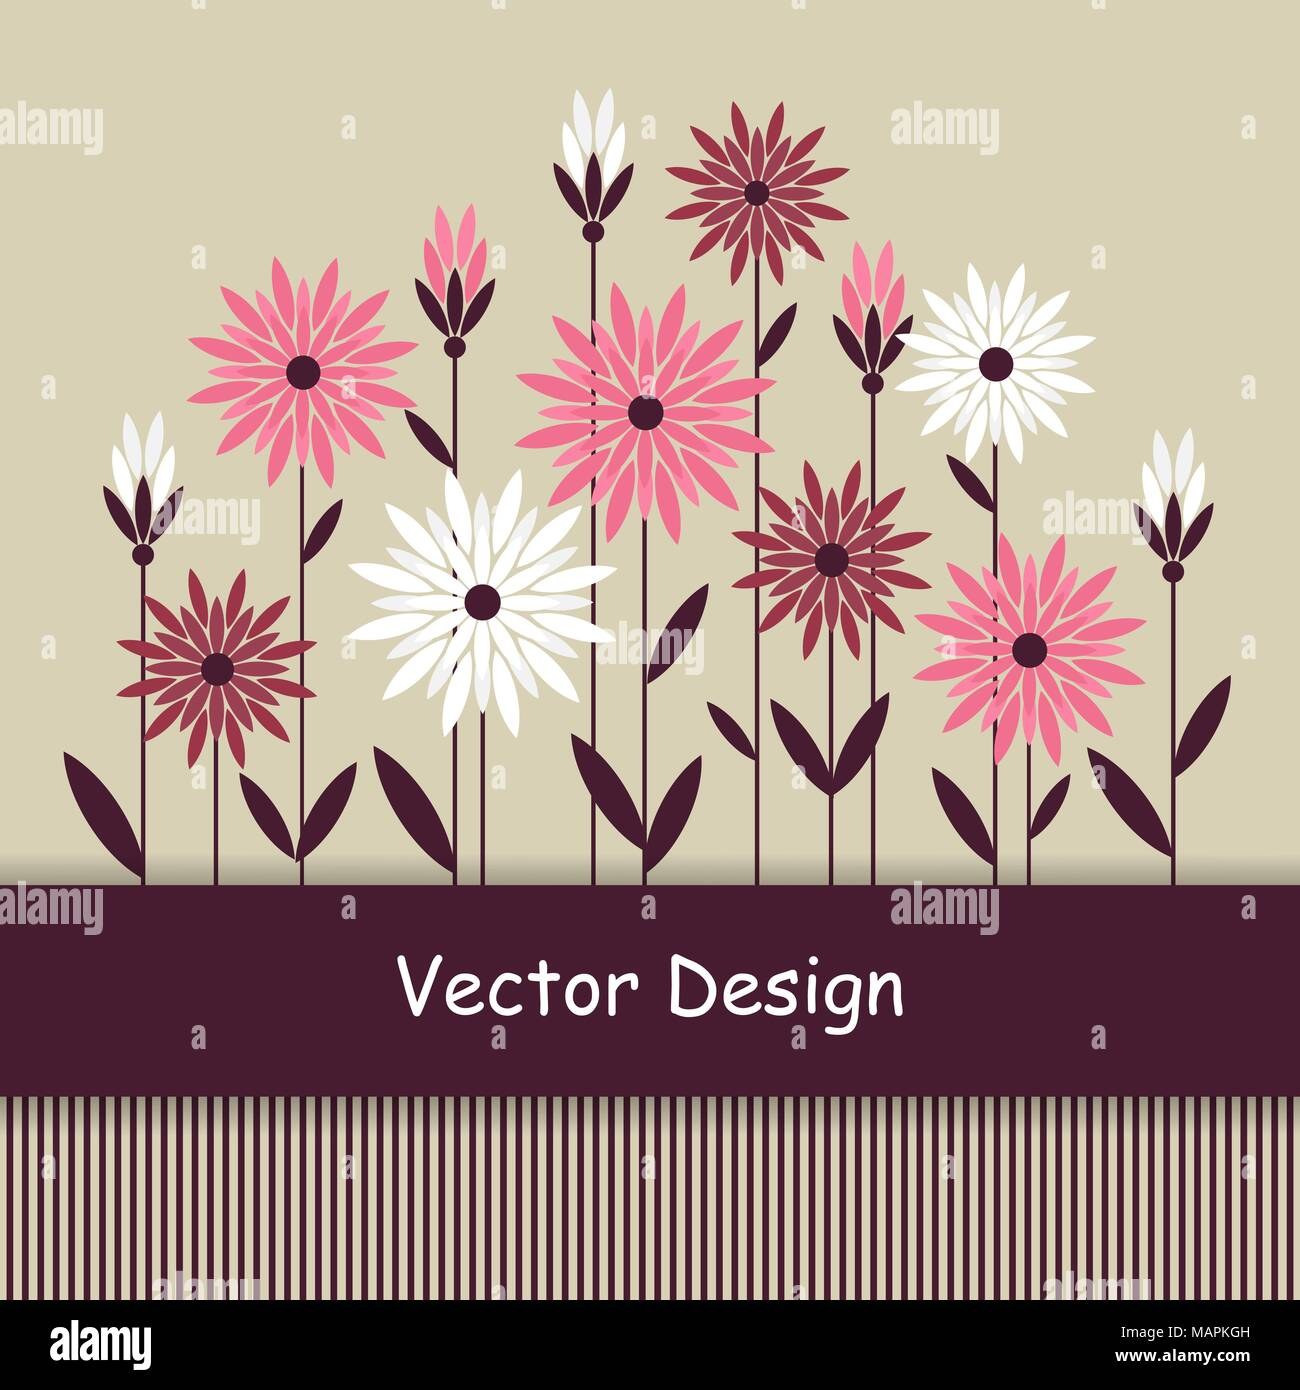 Simple Floral Background Stock Vector Art Illustration Vector